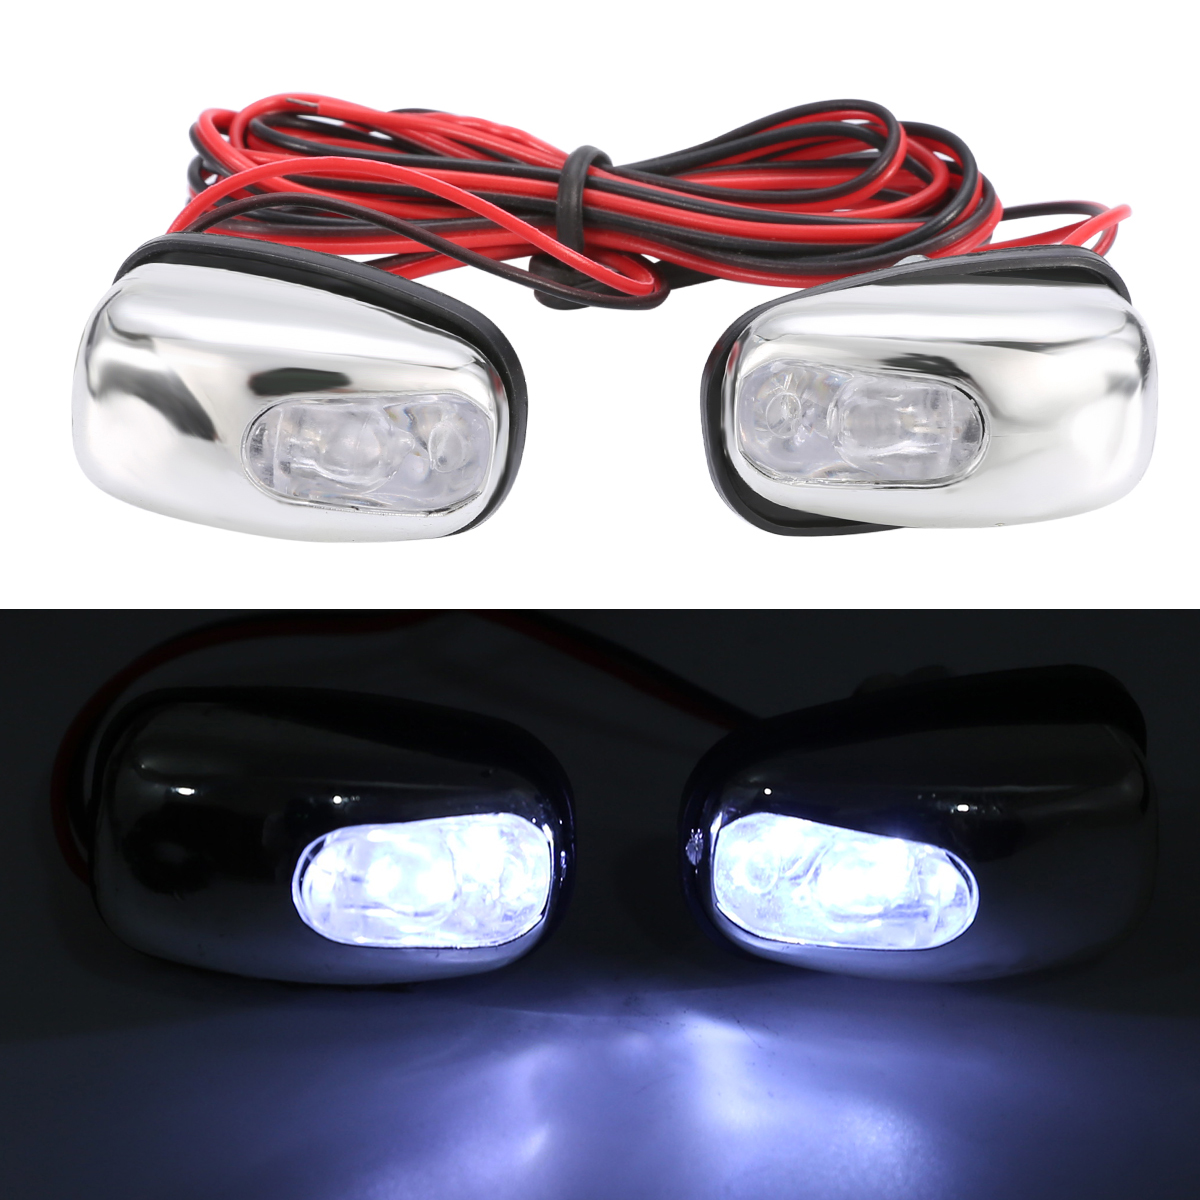 2pcs 12V LED Car Windshield Spray Nozzle Wiper Washer Eyes Decoration White Color Lights For Auto Trucks-in Decorative Lamp from Automobiles & Motorcycles